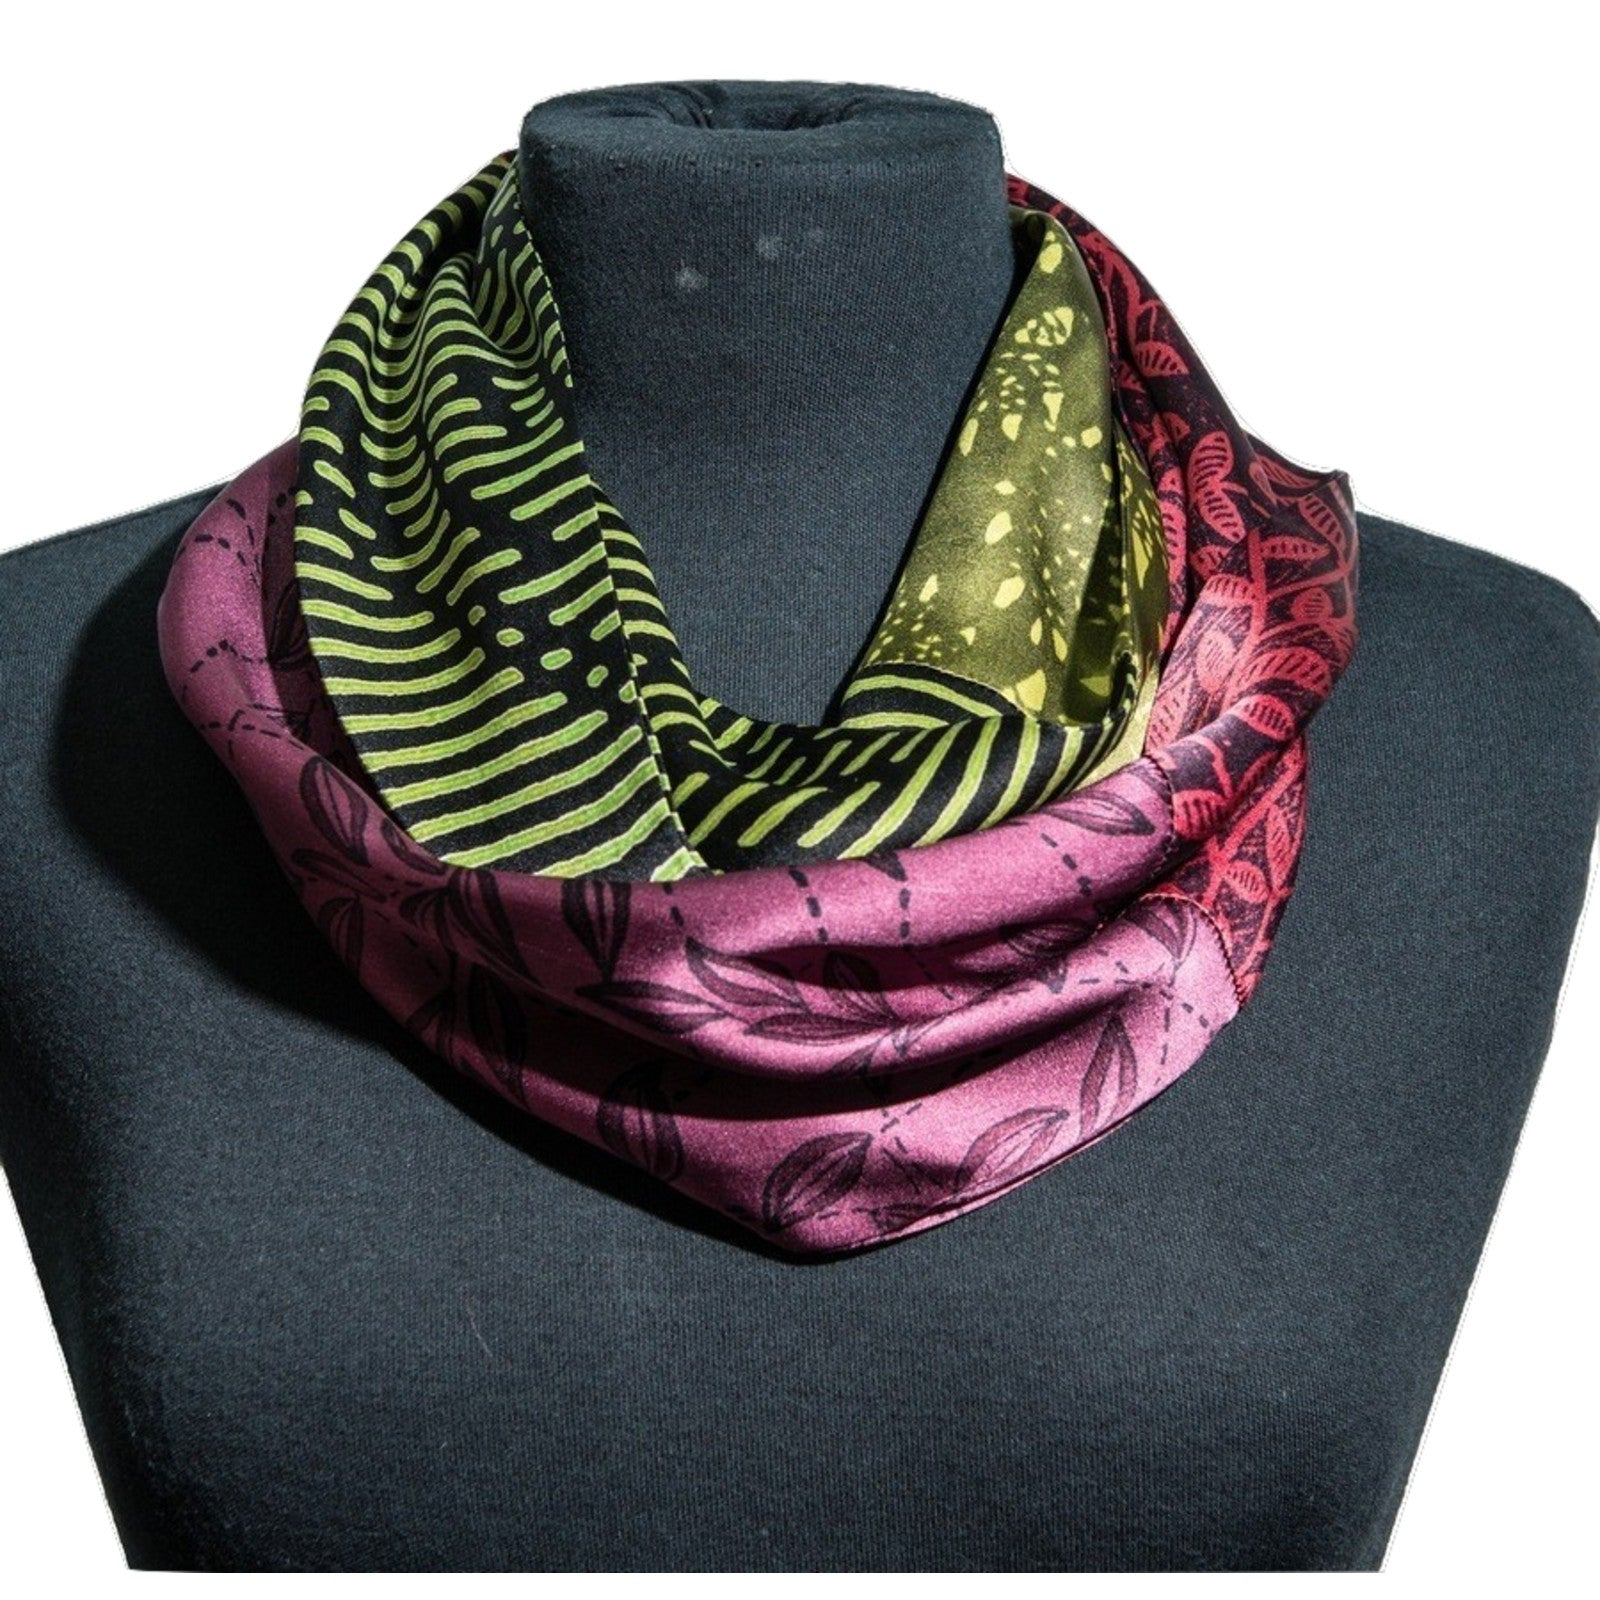 scarf img products dana jl scarves infinity accessories herbert reflection knit